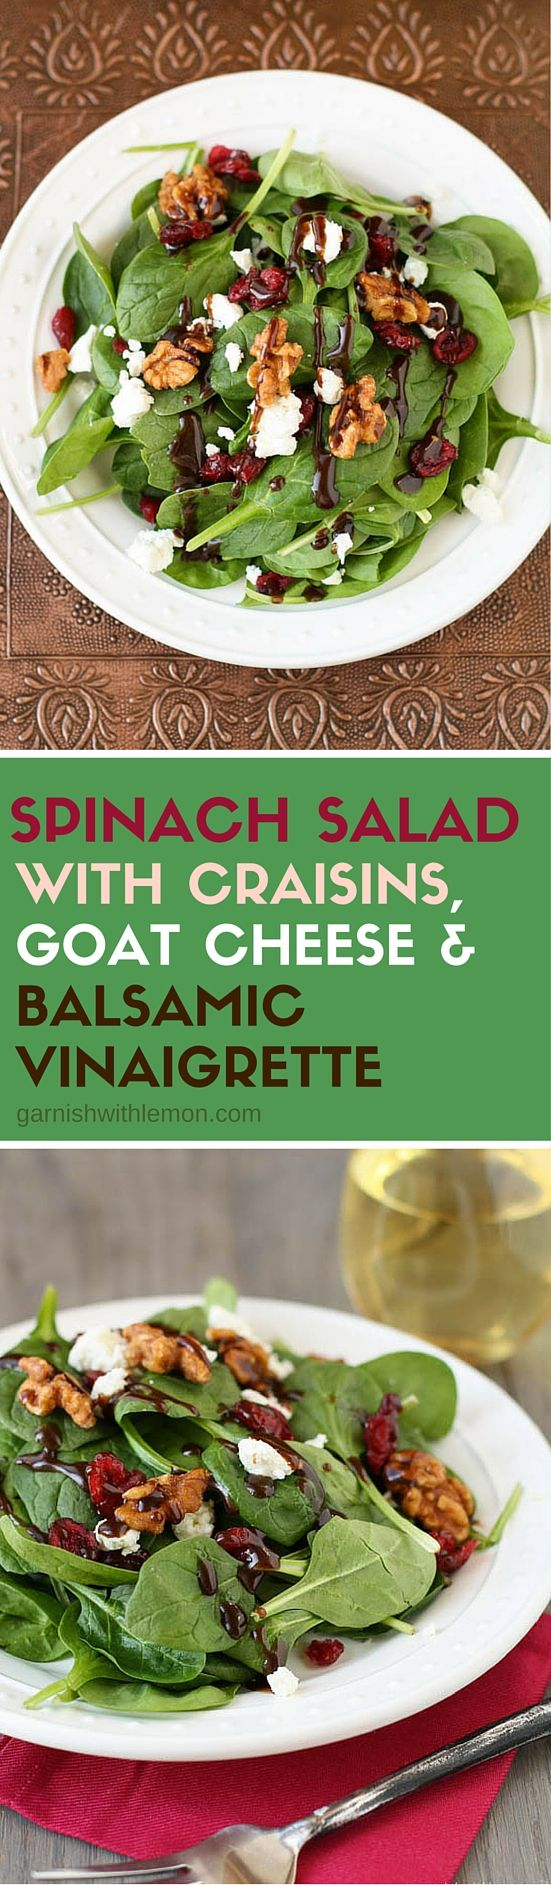 Forget to buy salad dressing at the store? Our simple Spinach Salad with Homemade Balsamic Vinaigrette beats the store-bought variety any day!